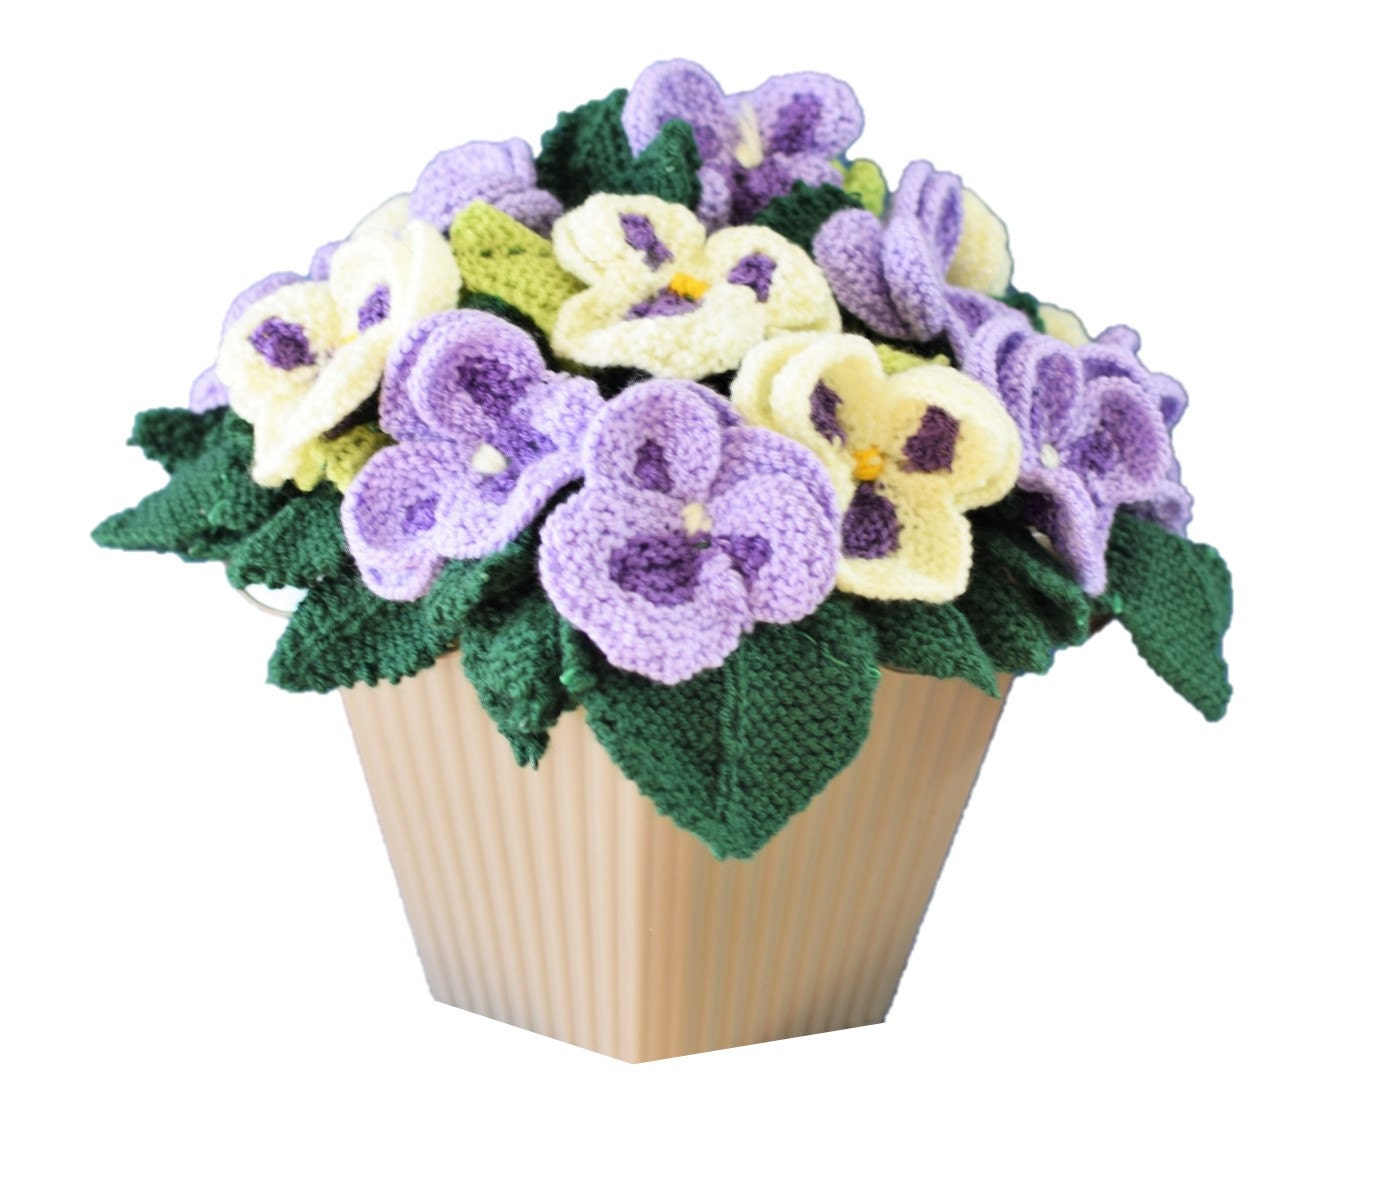 Pot of knitted pansies, knitting pattern for pansies, knitted ...